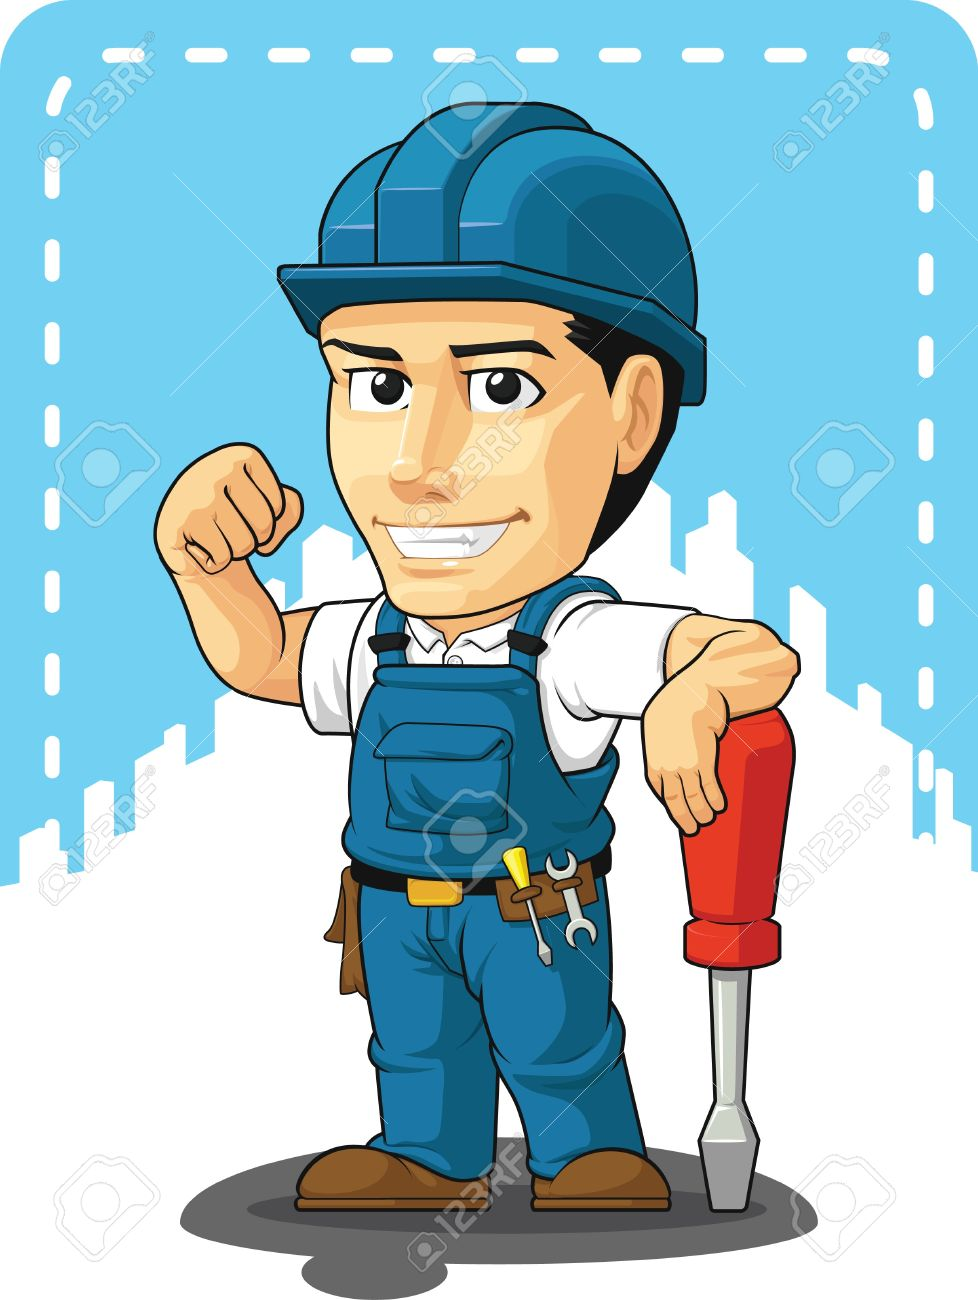 Electrician clipart professional 7 » Clipart Station.